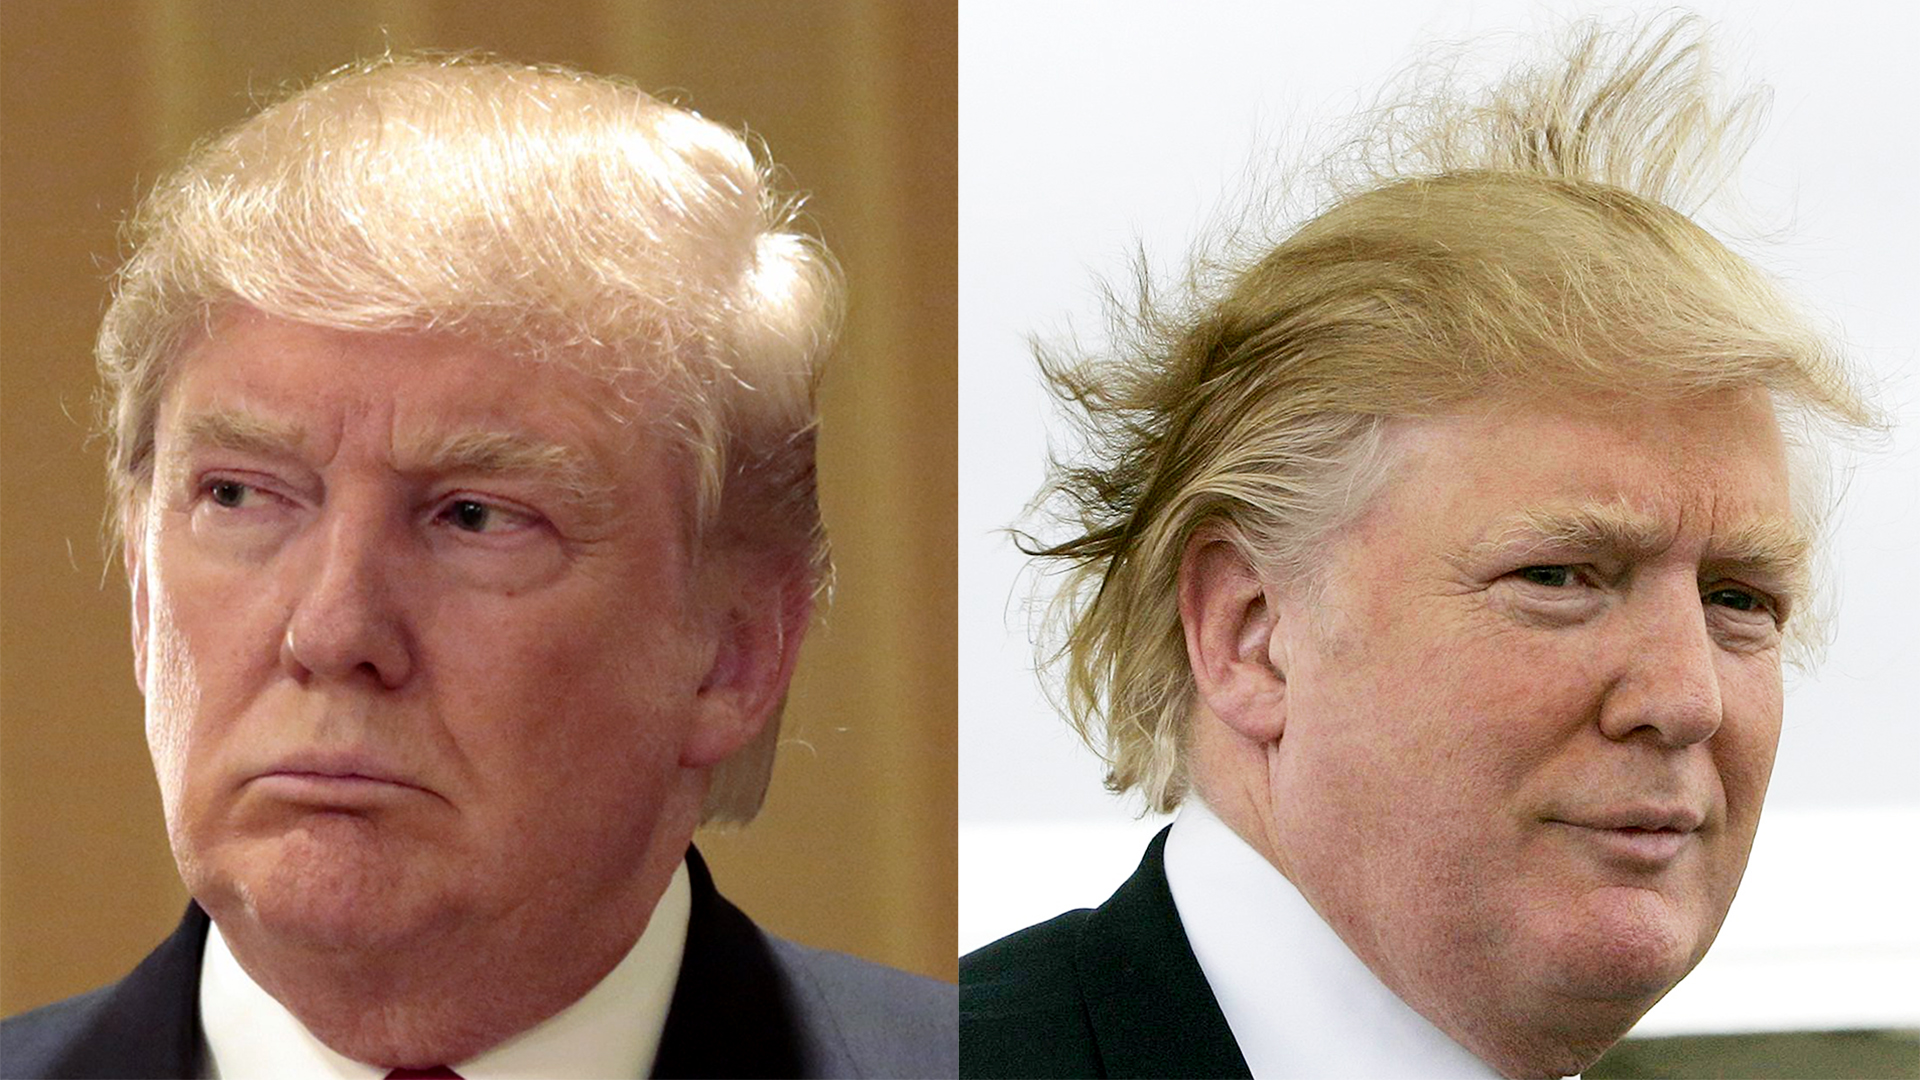 What Color Is Trumps Natural Hair